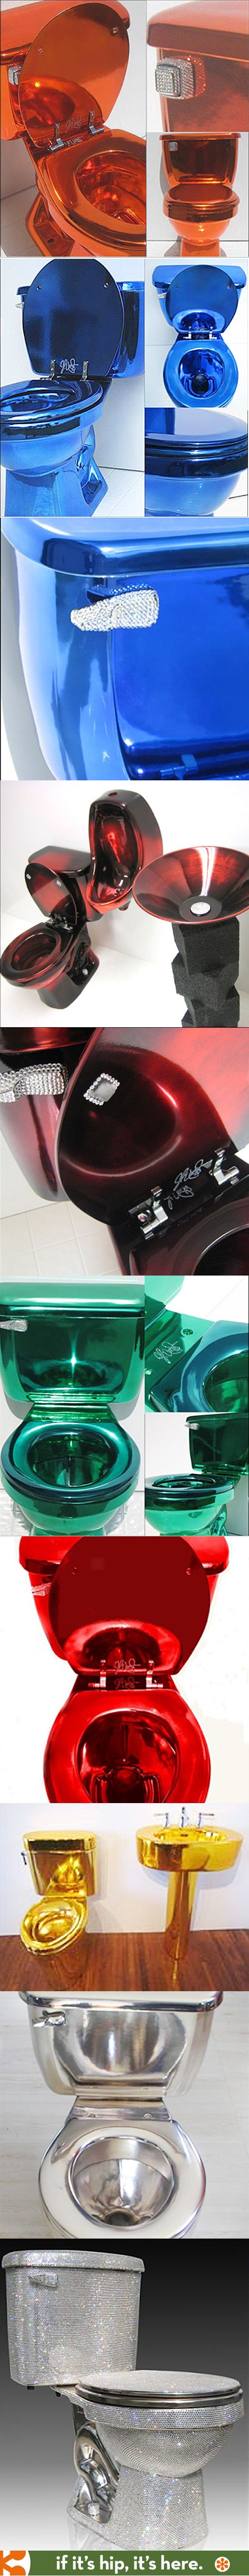 These Color Chromed and Crystallized Toilets are wild!